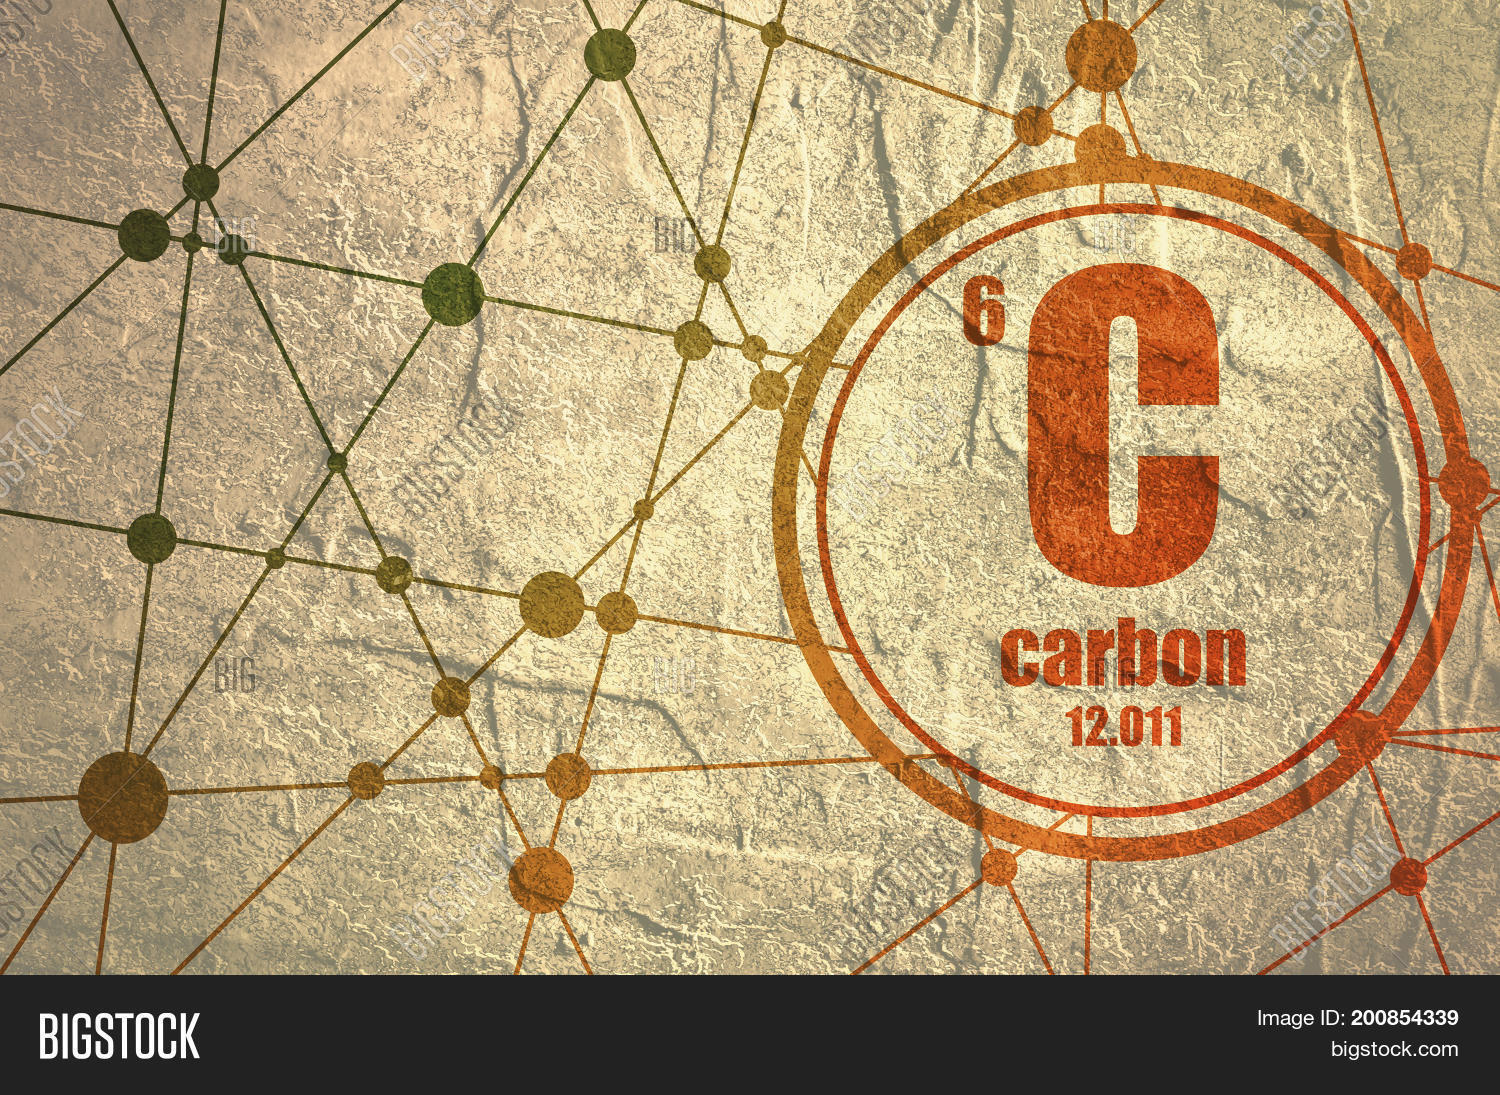 Carbon chemical element sign image photo bigstock carbon chemical element sign with atomic number and atomic weight chemical element of periodic urtaz Image collections